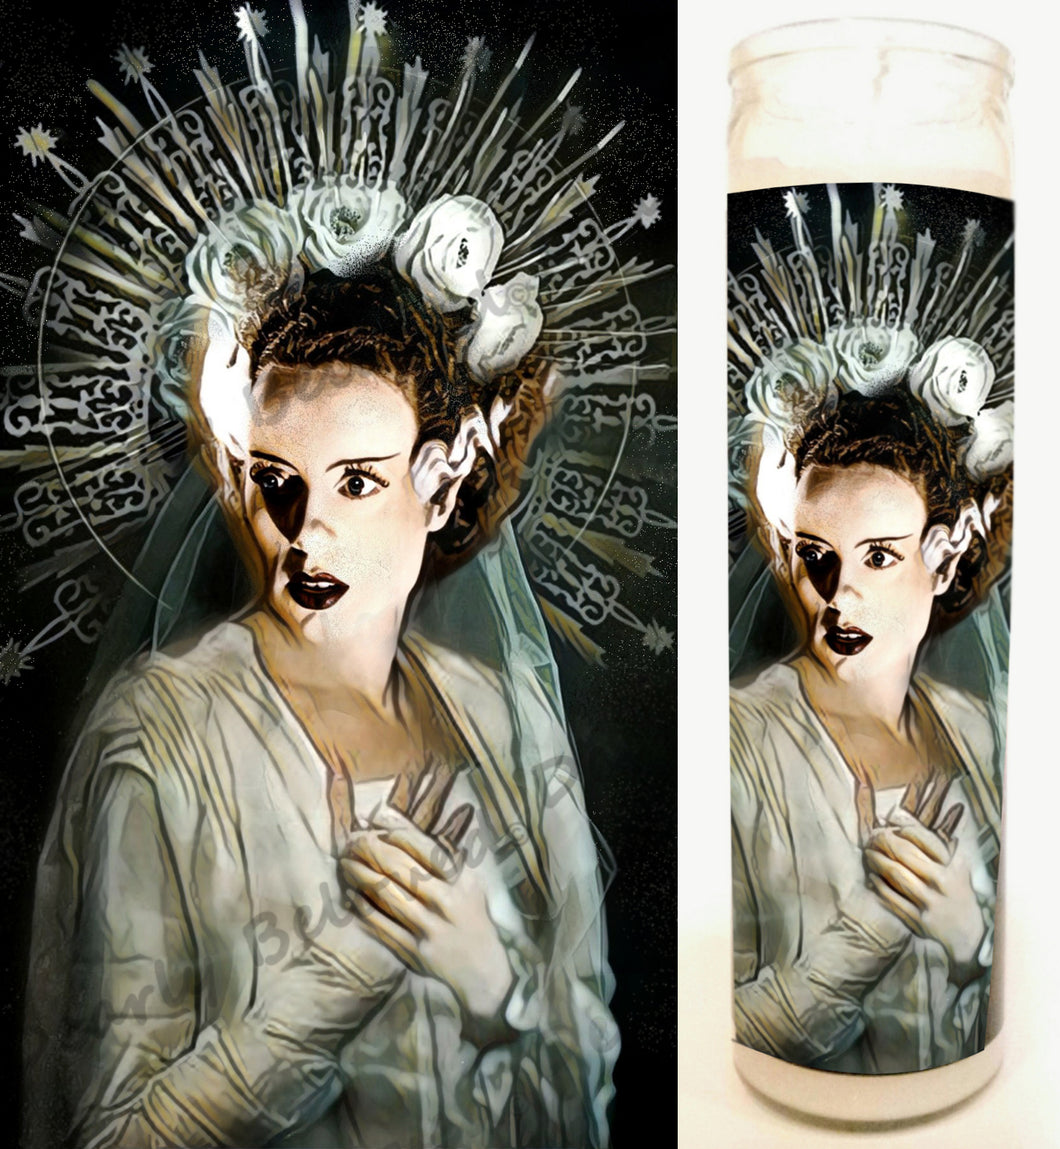 Bride of Frank, Frankenstein Altar Candle, Devotional 8